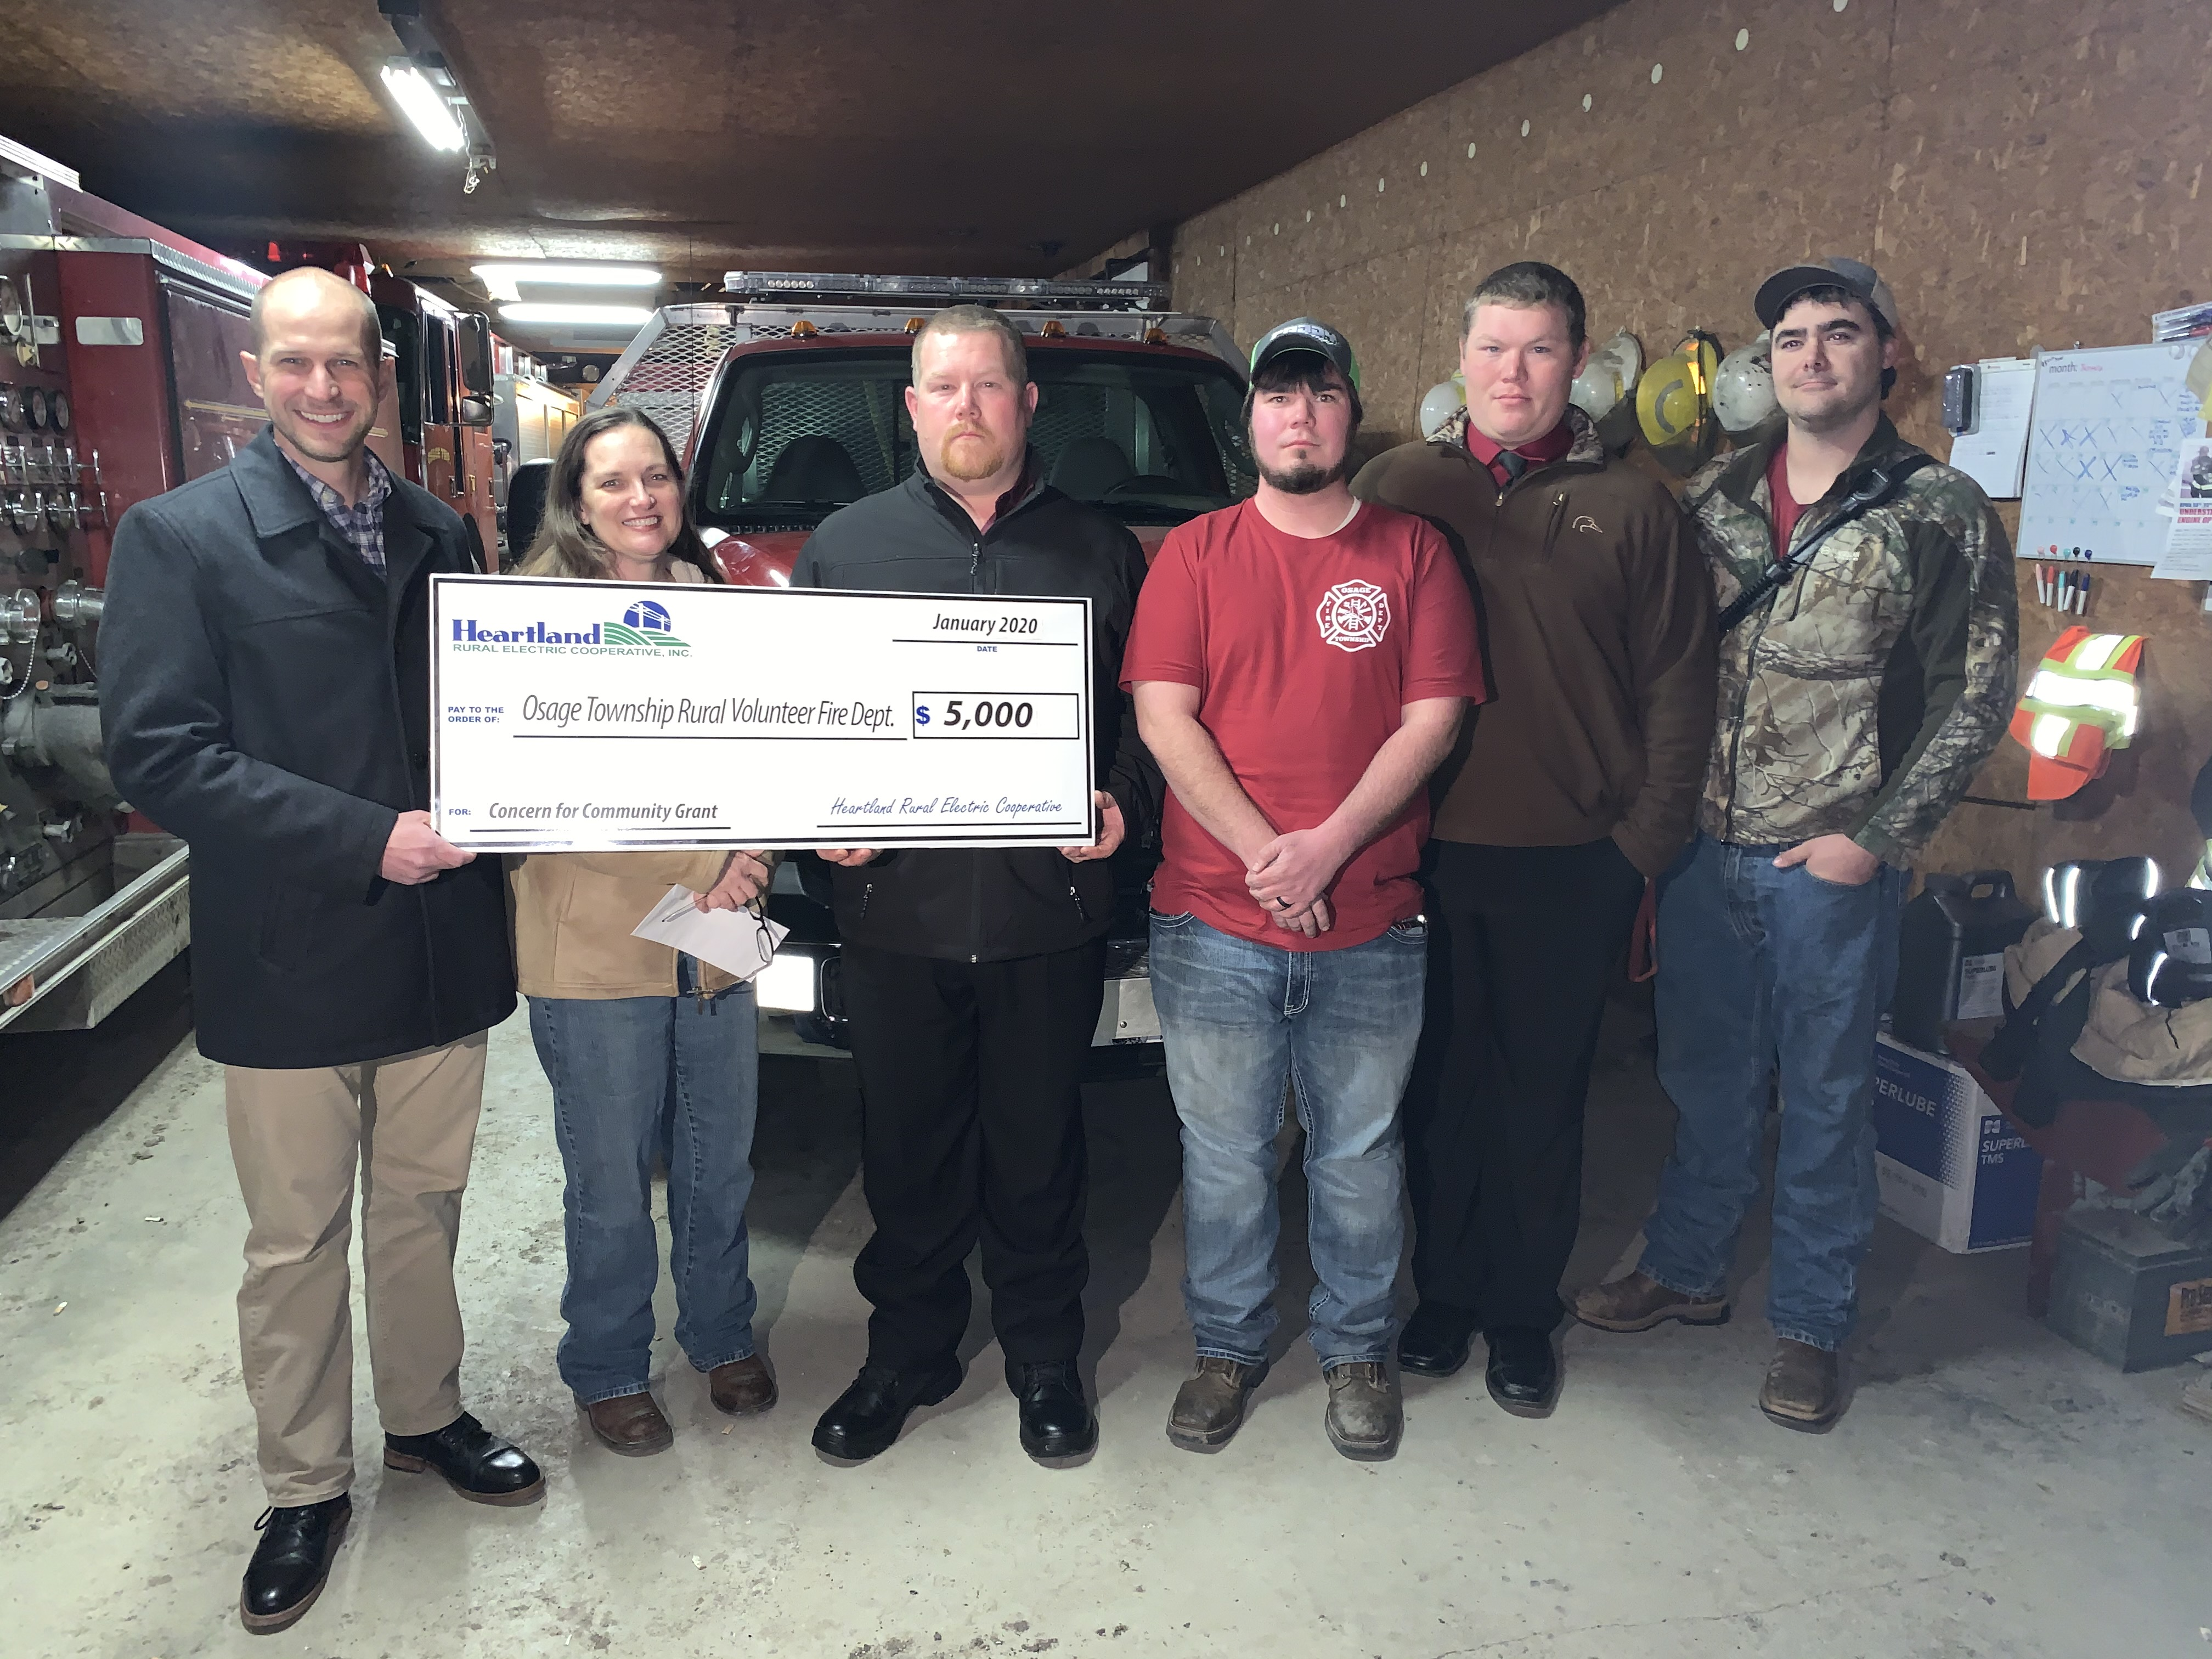 Awarding a Concern for Community Grant